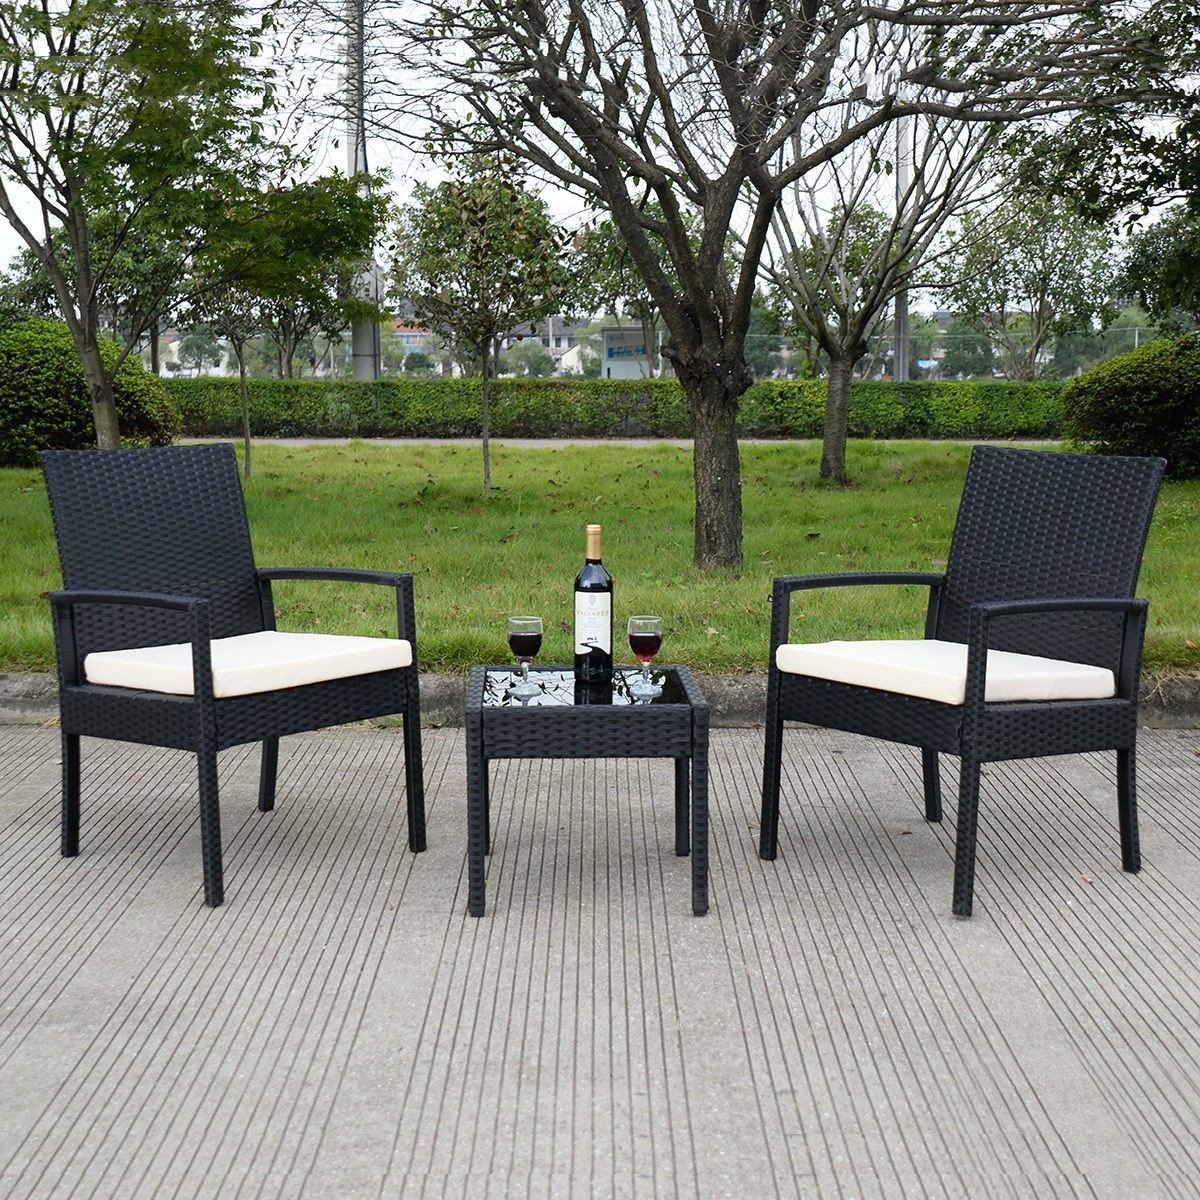 3 pcs Outdoor Rattan Patio Furniture Set - By Choice Products by By Choice Products (Image #2)